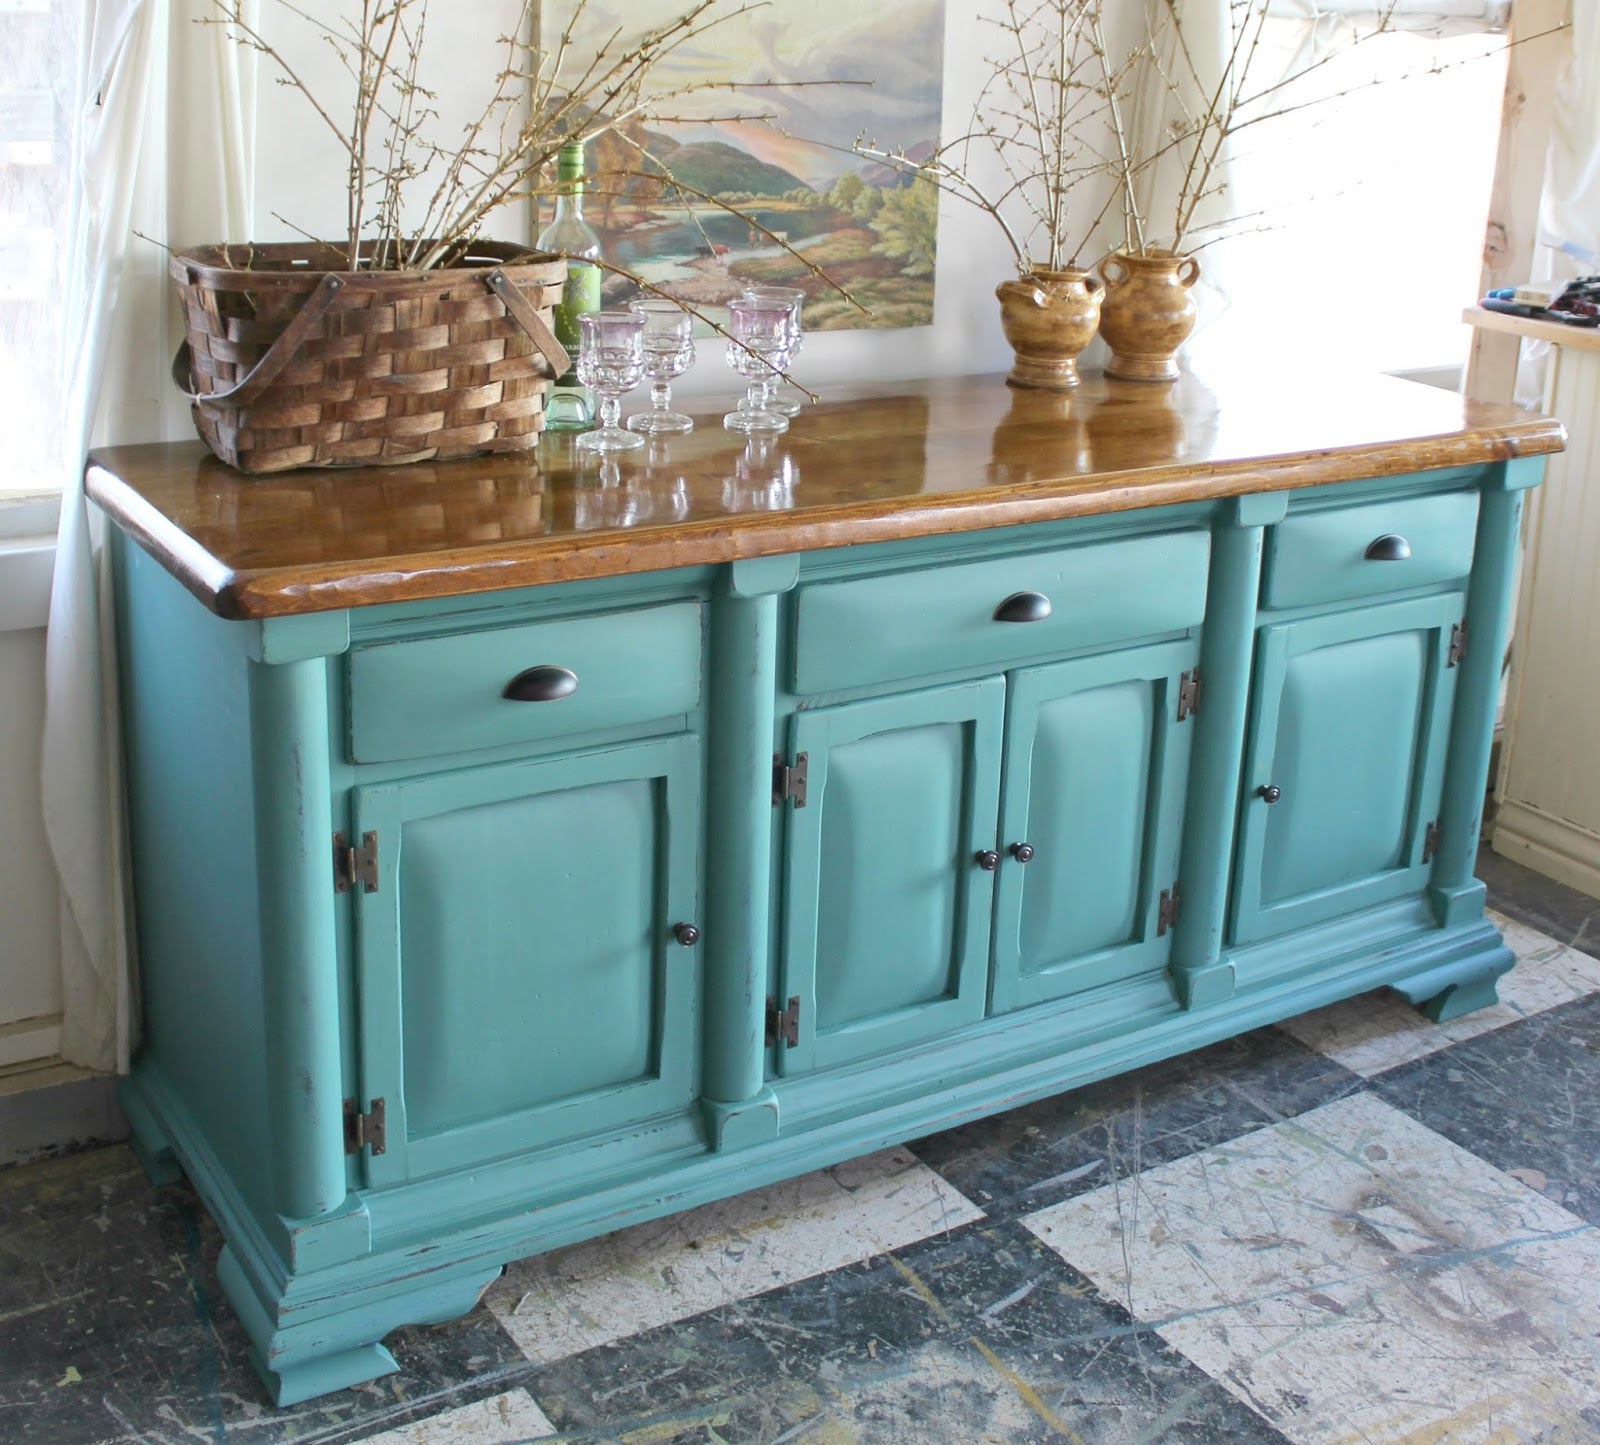 Heir and Space: A Pine Sideboard in Blue